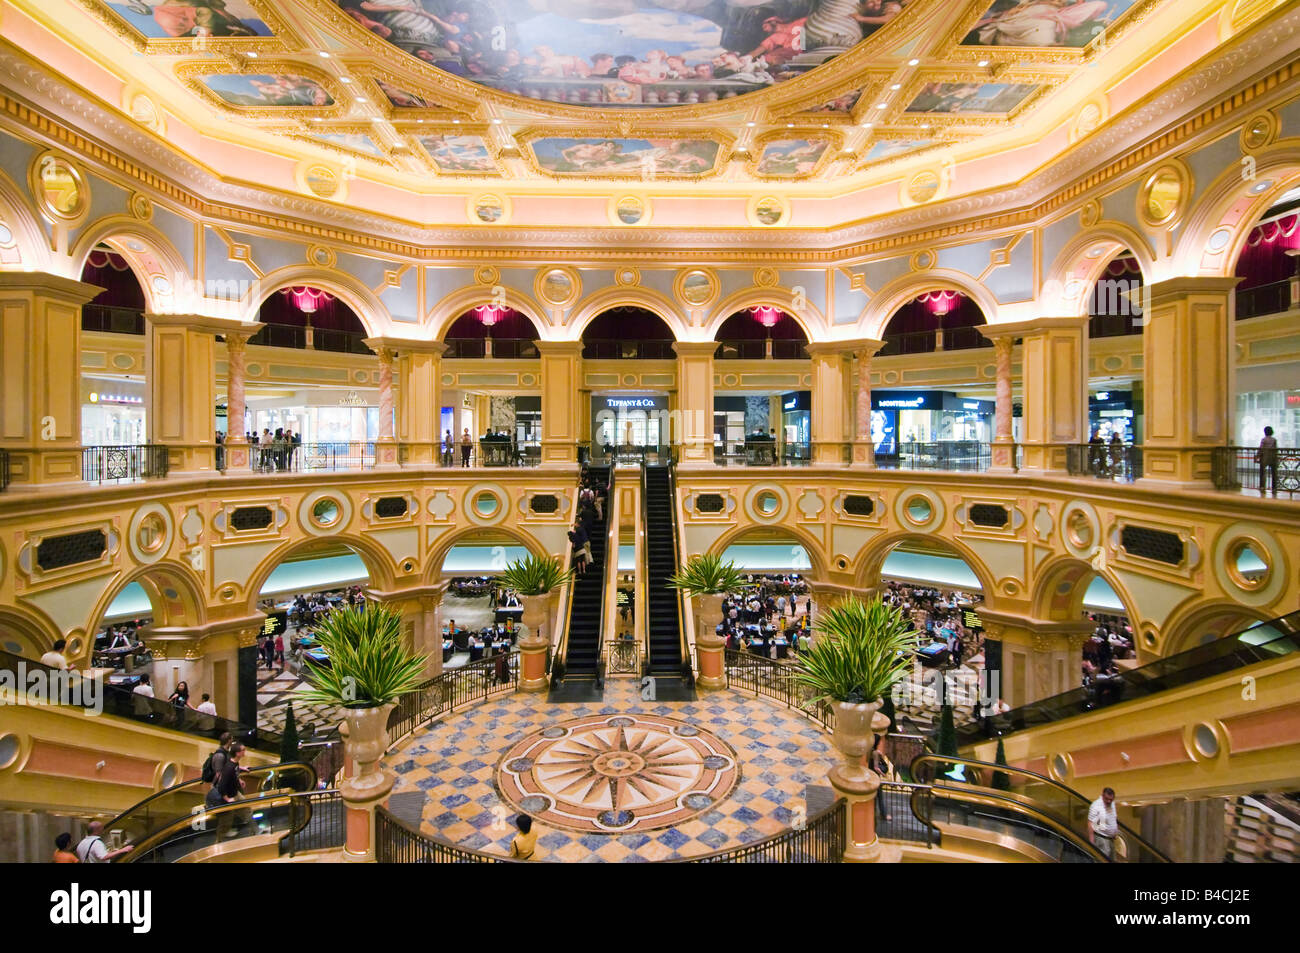 Interior of the venetian macao hotel and casino macau stock photo interior of the venetian macao hotel and casino macau altavistaventures Images